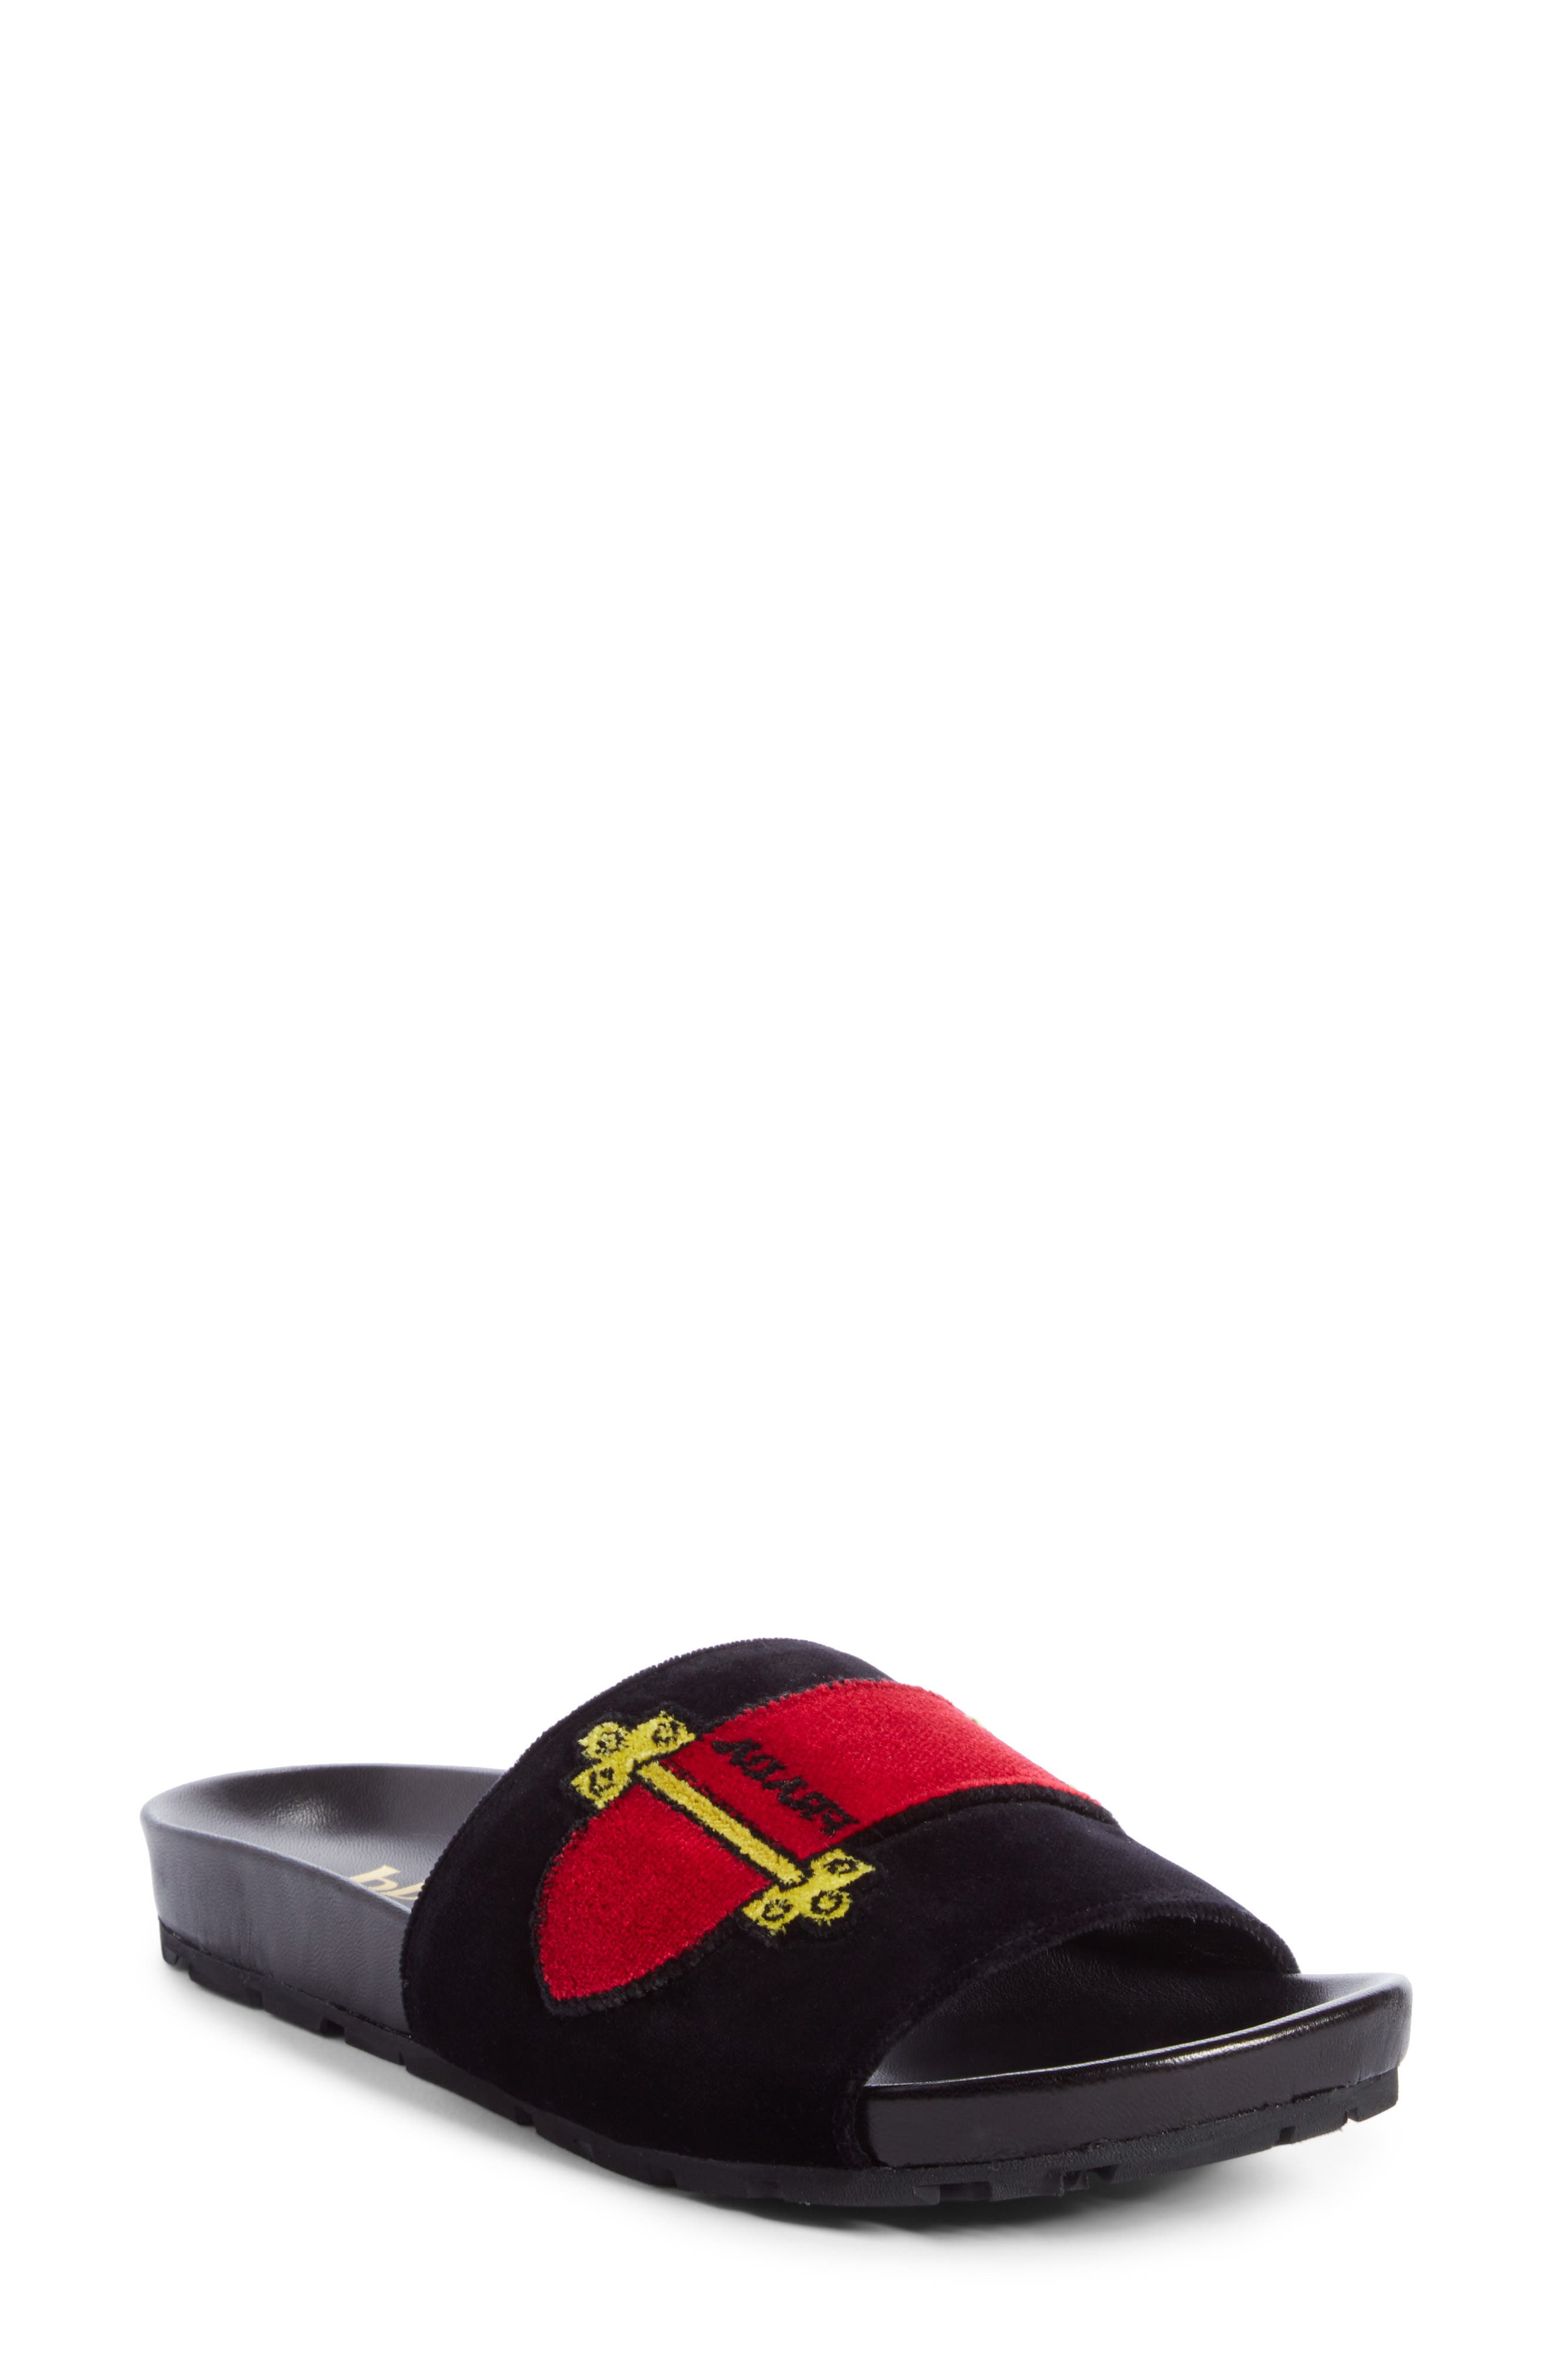 PRADA Logo Slide Sandal, Main, color, 001